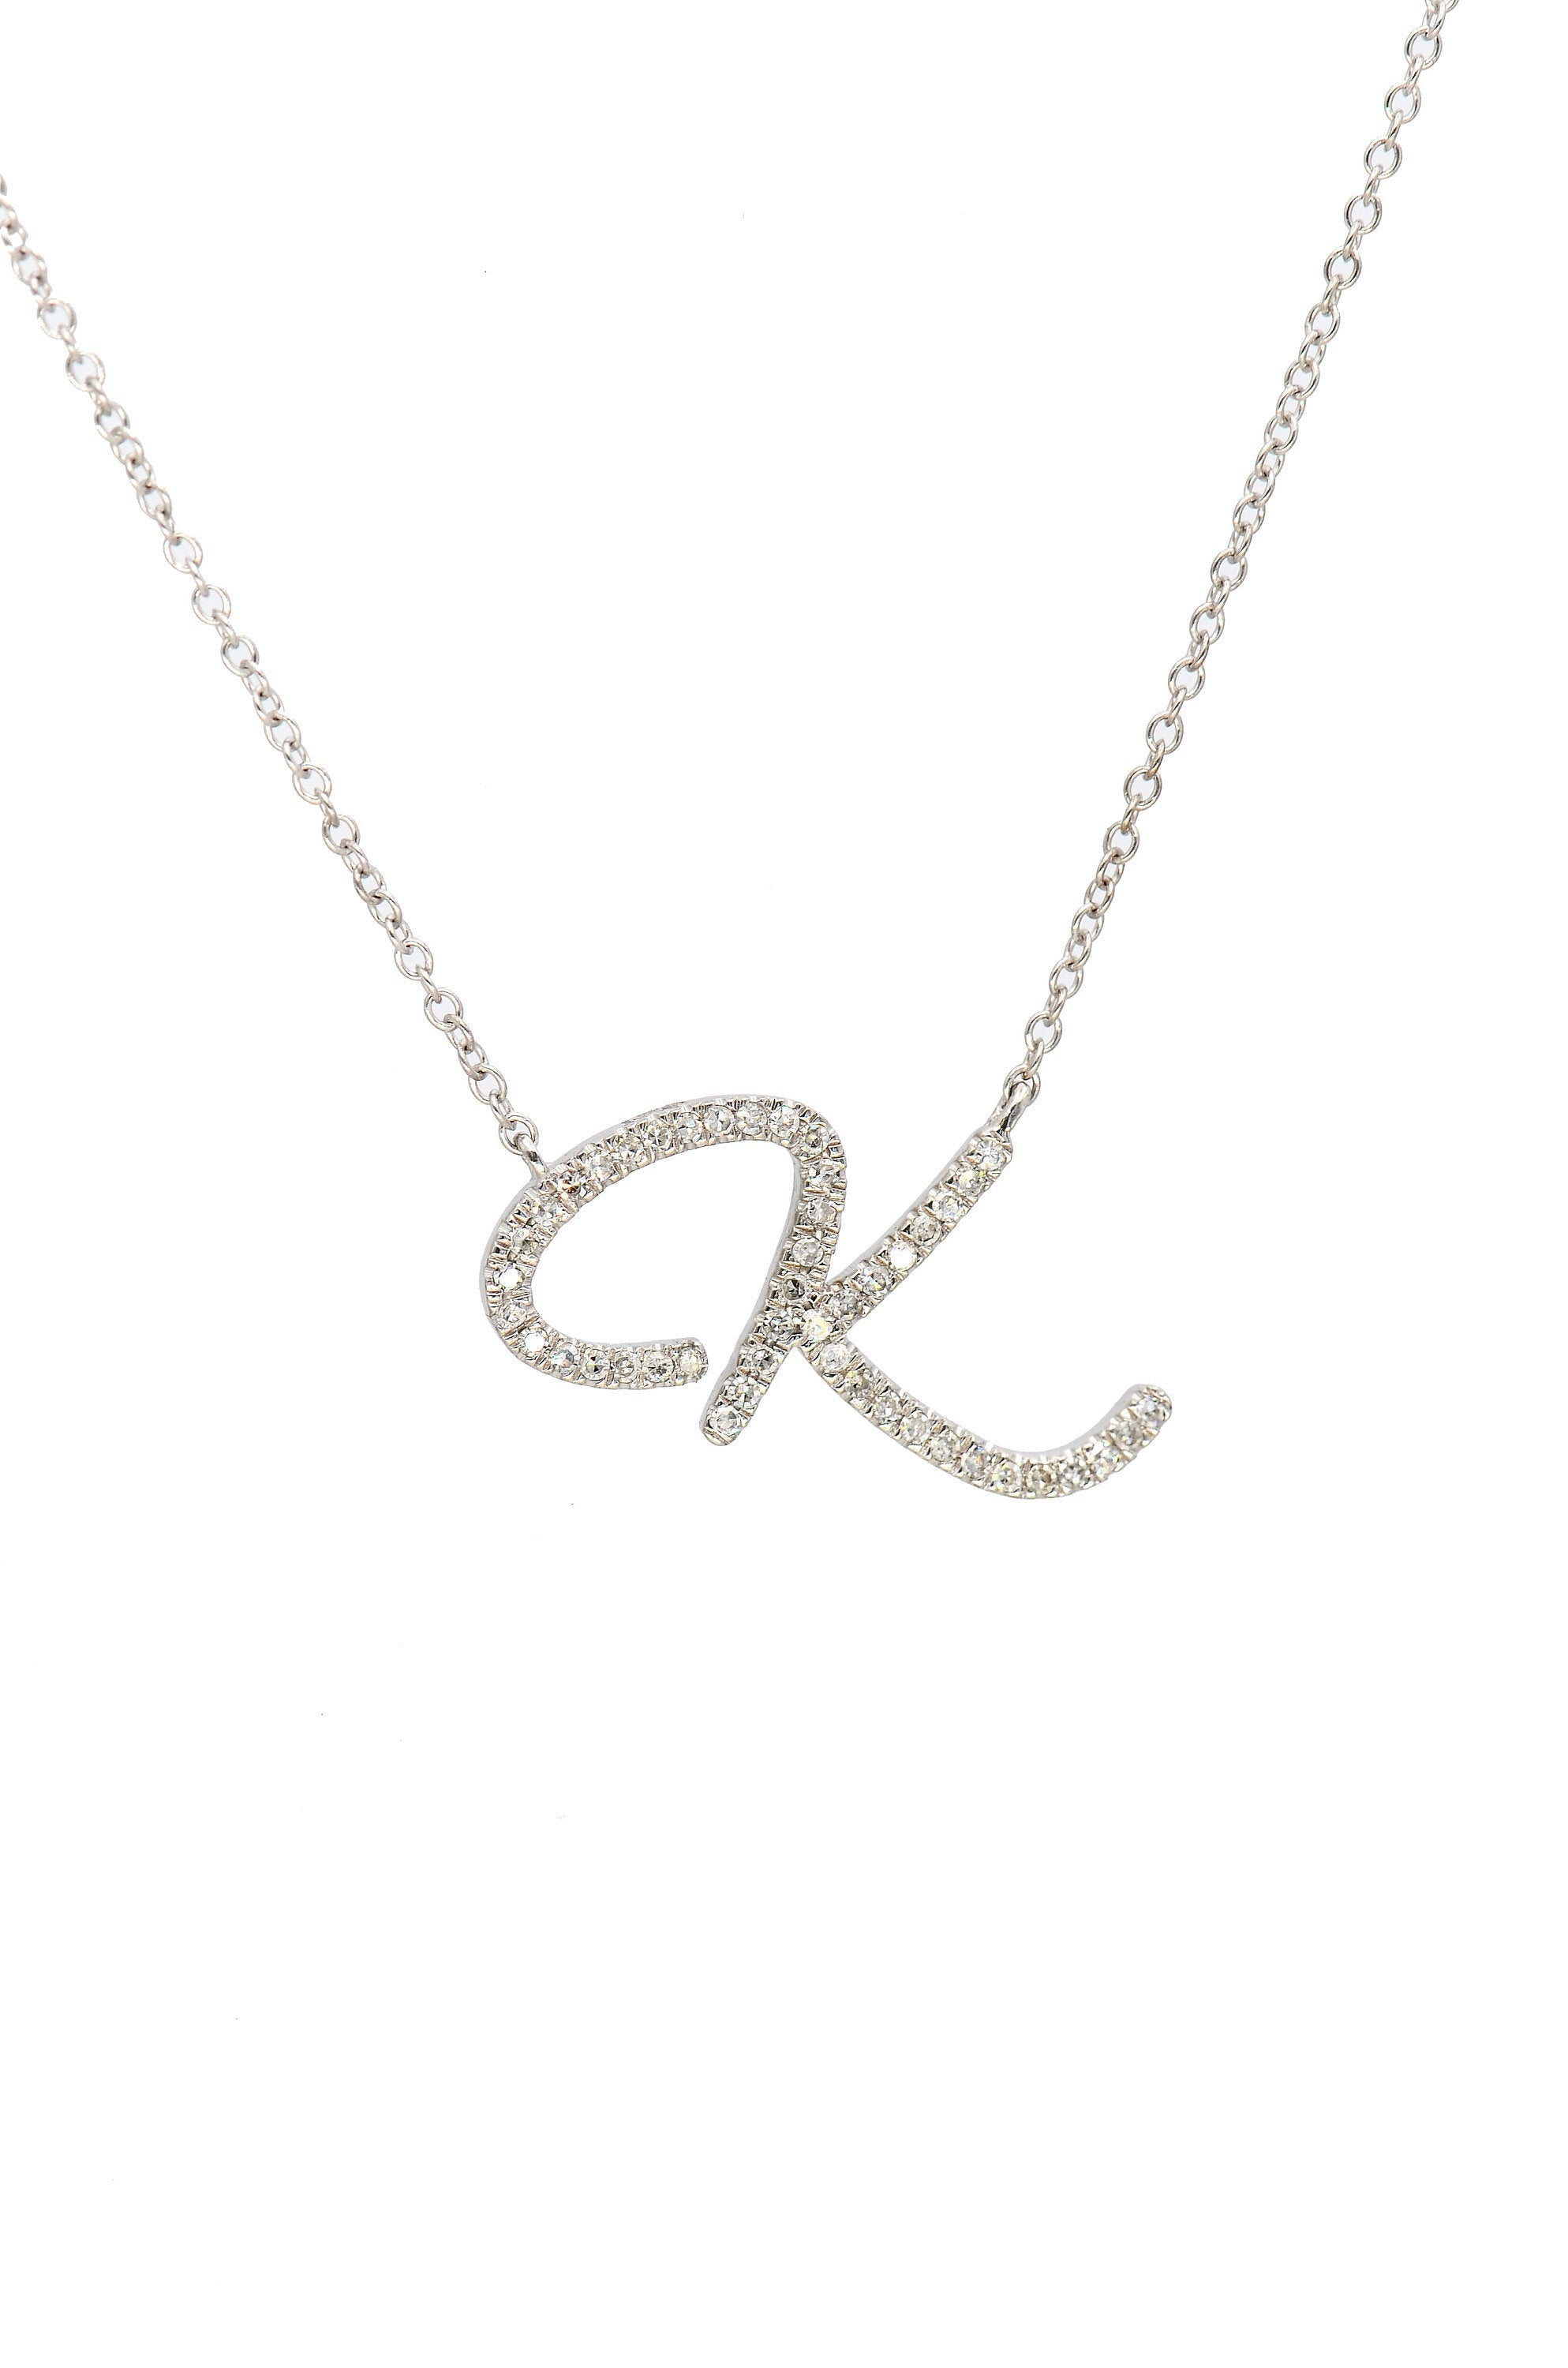 White Gold Diamond Initial Necklace, Customized Diamond Letter Alphabet Necklace, Bridal Diamond Necklace, 14K Initial Necklace